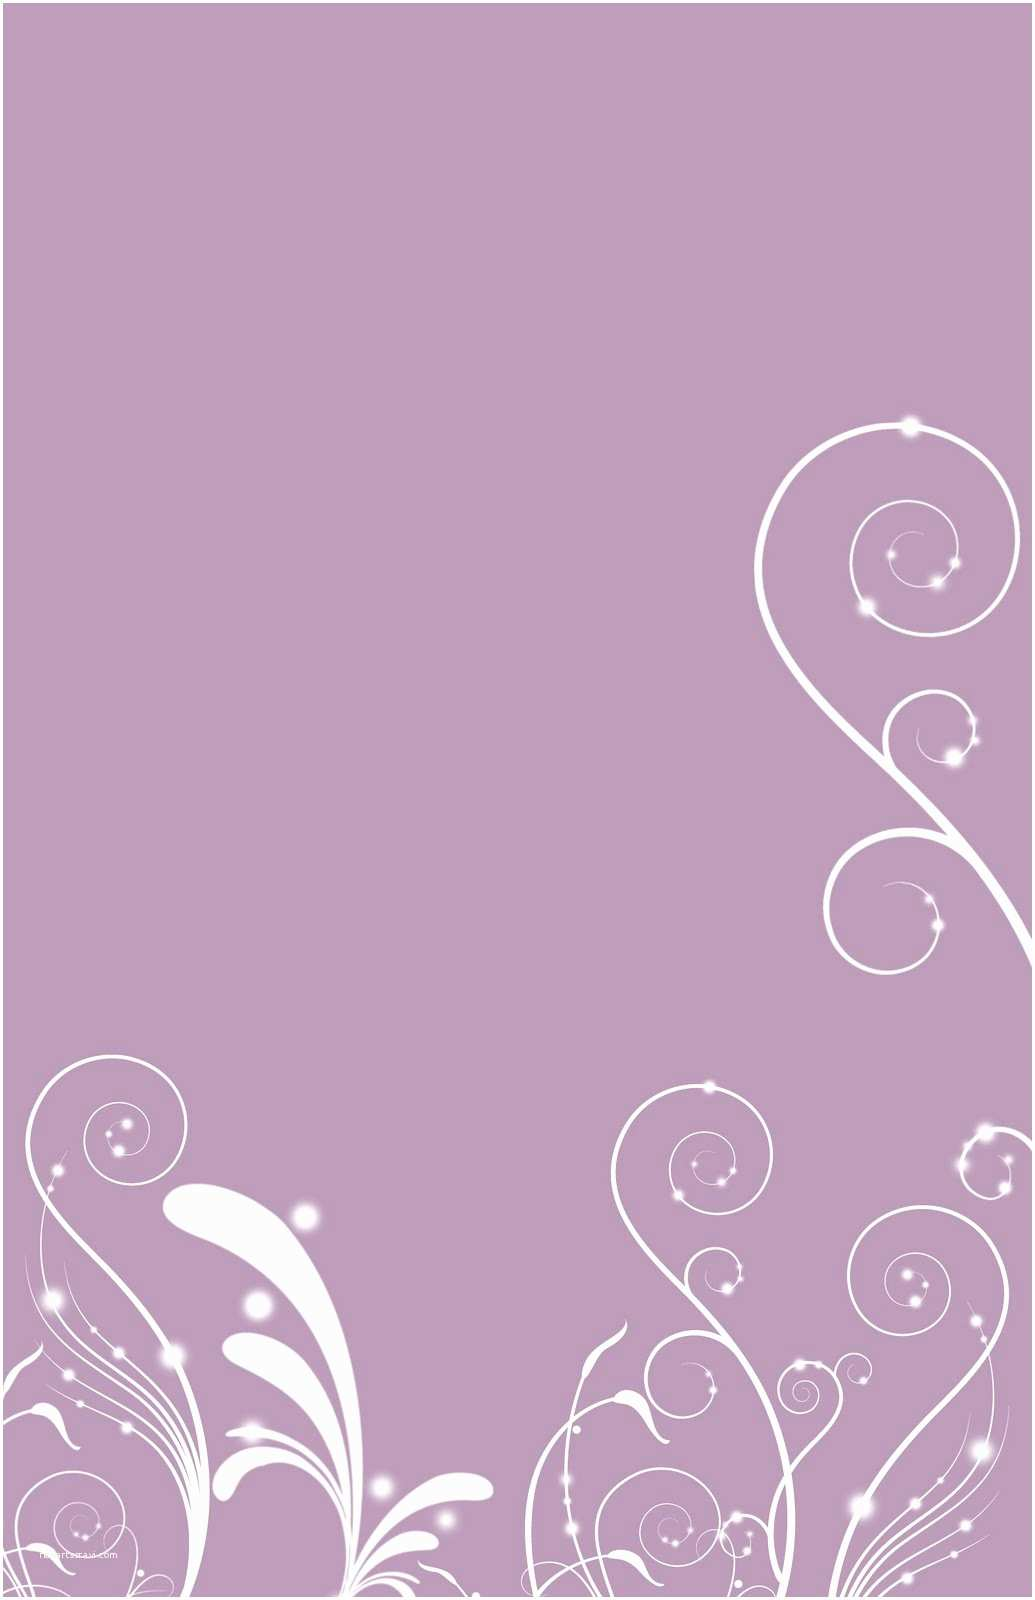 Background Images for Wedding Invitation Cards Elegant and Beautiful Wedding Invitations for Free Spring